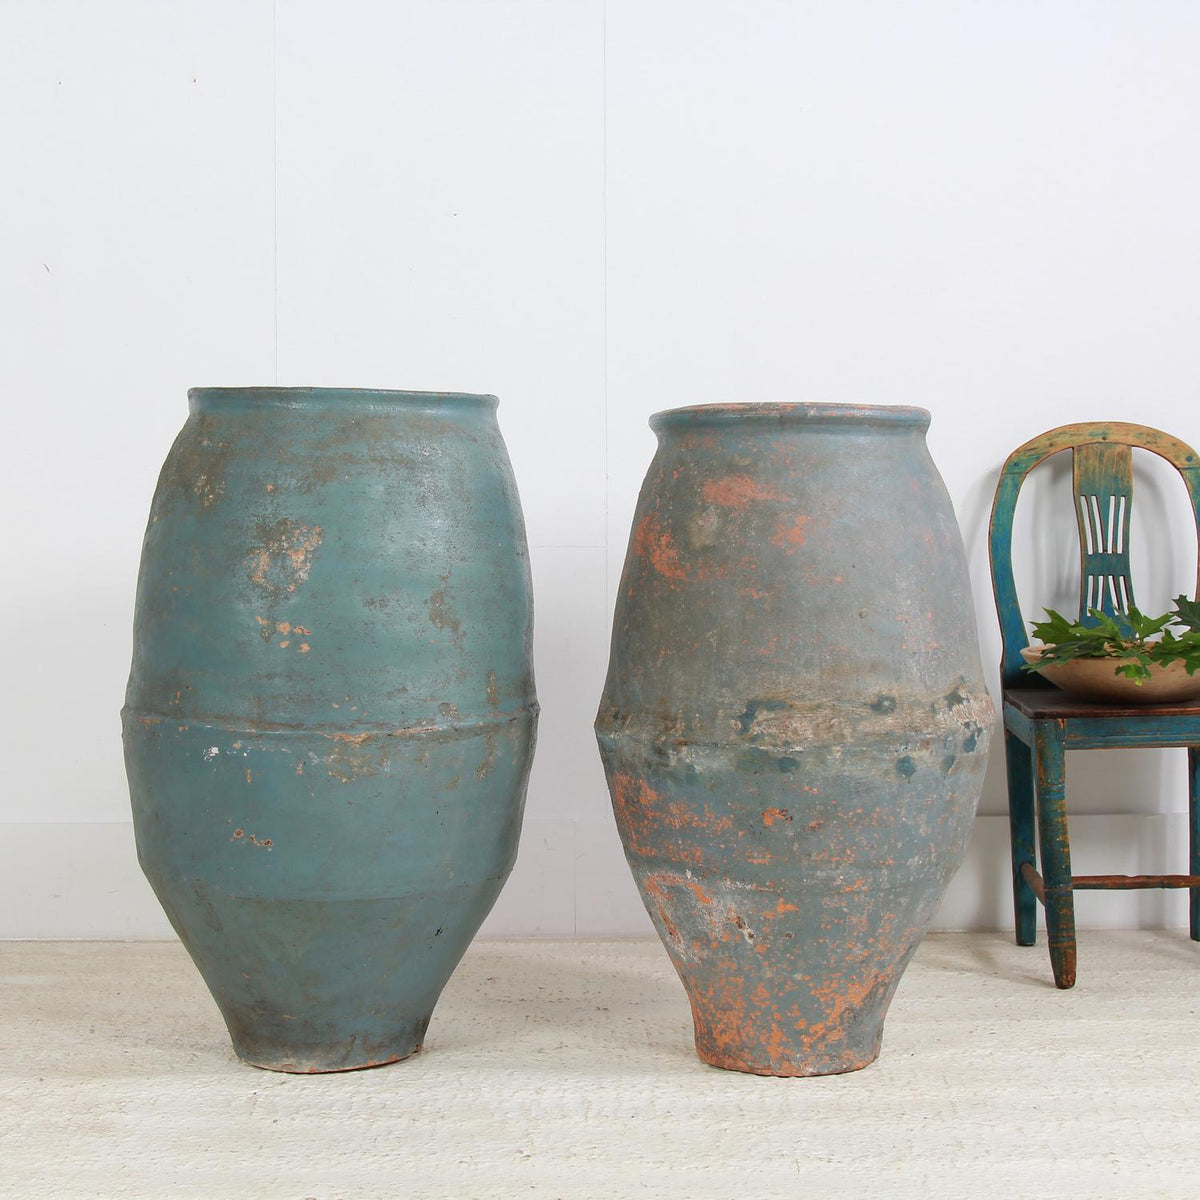 Large 19thC Mediterranean Olive Jars in Original Blue Patina